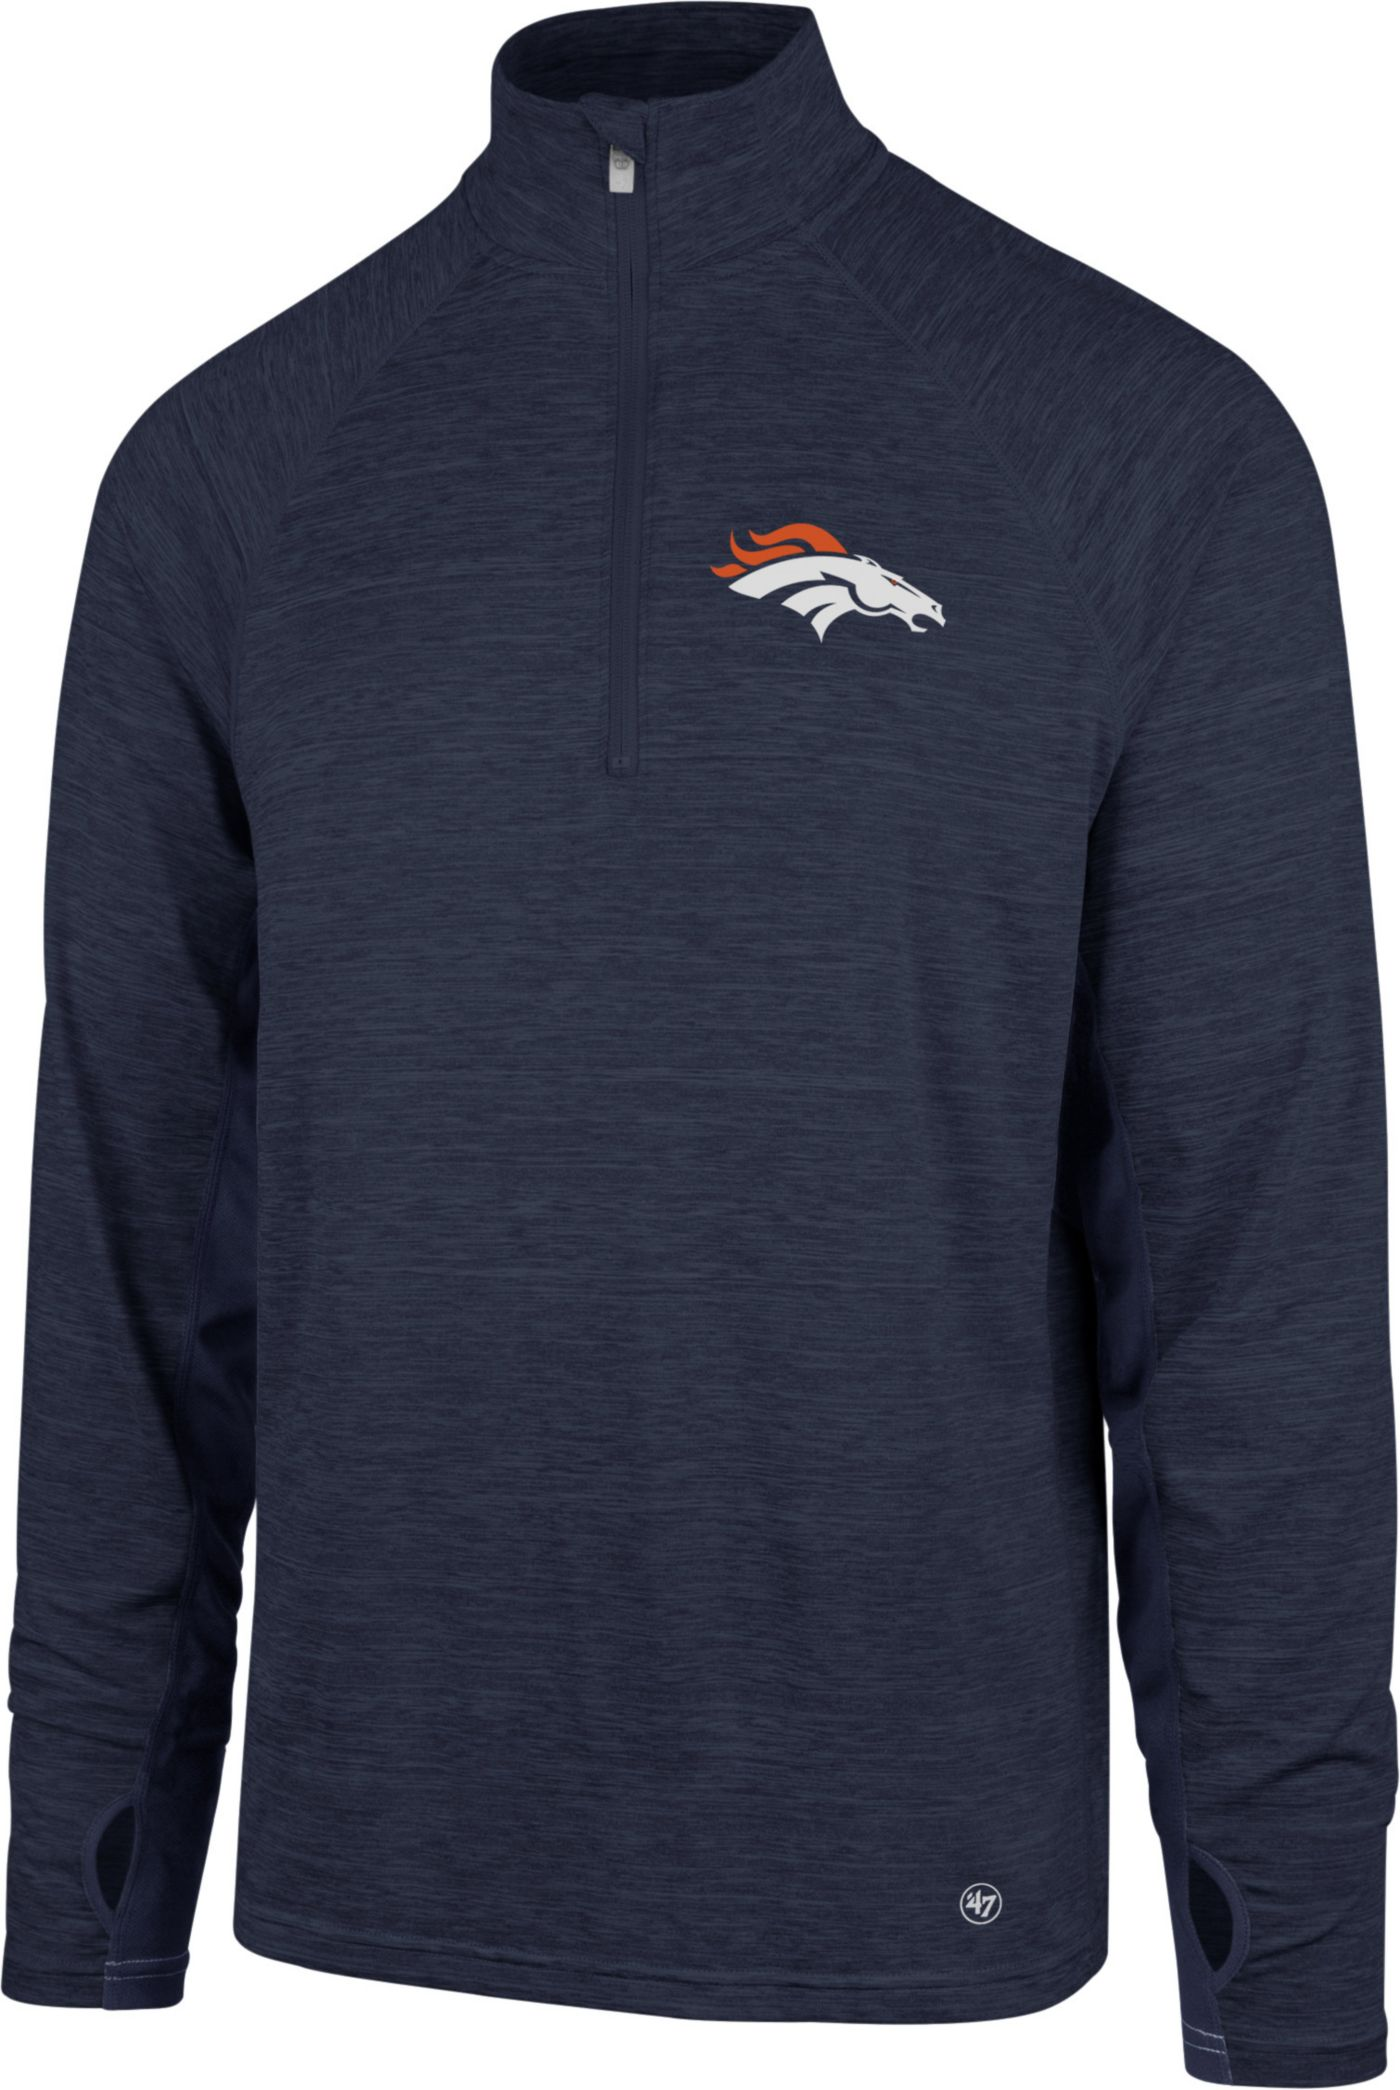 '47 Men's Denver Broncos Forward Navy Quarter-Zip Pullover